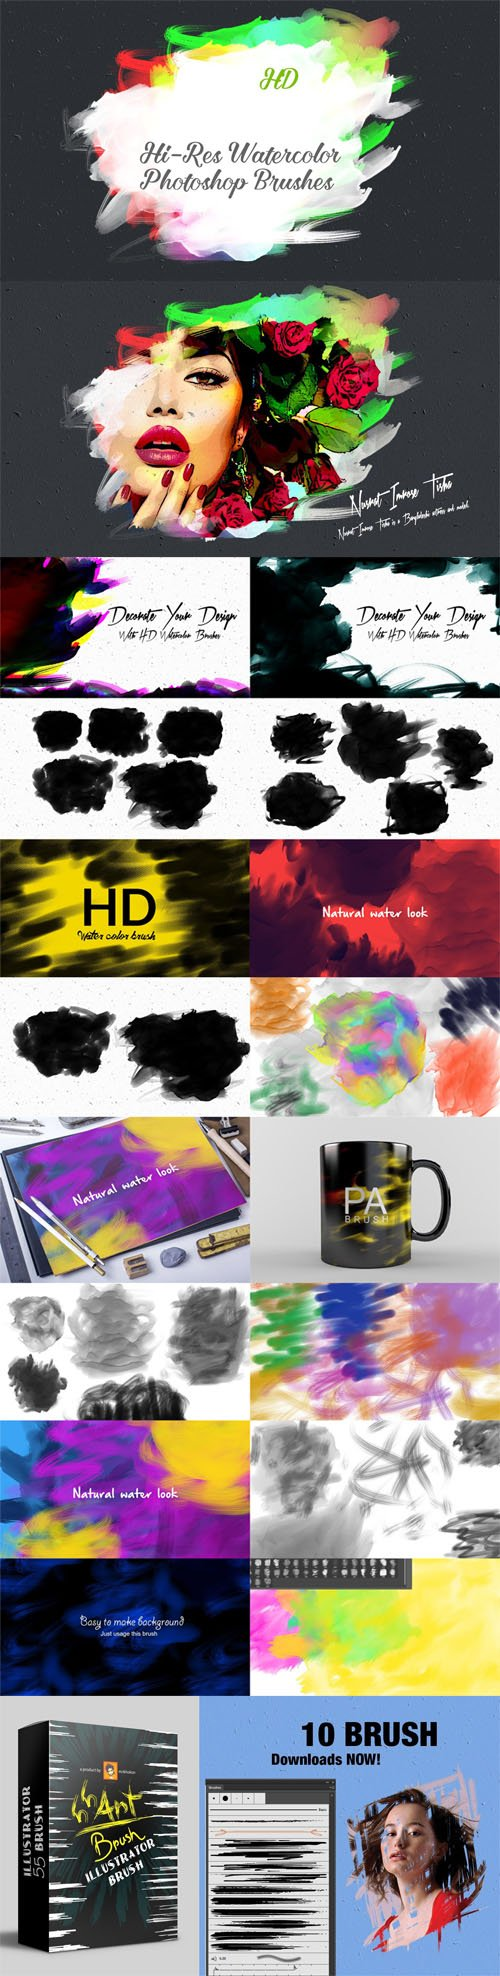 35+ HD Watercolor Photoshop Brushes [ABR] + Illustrator Art